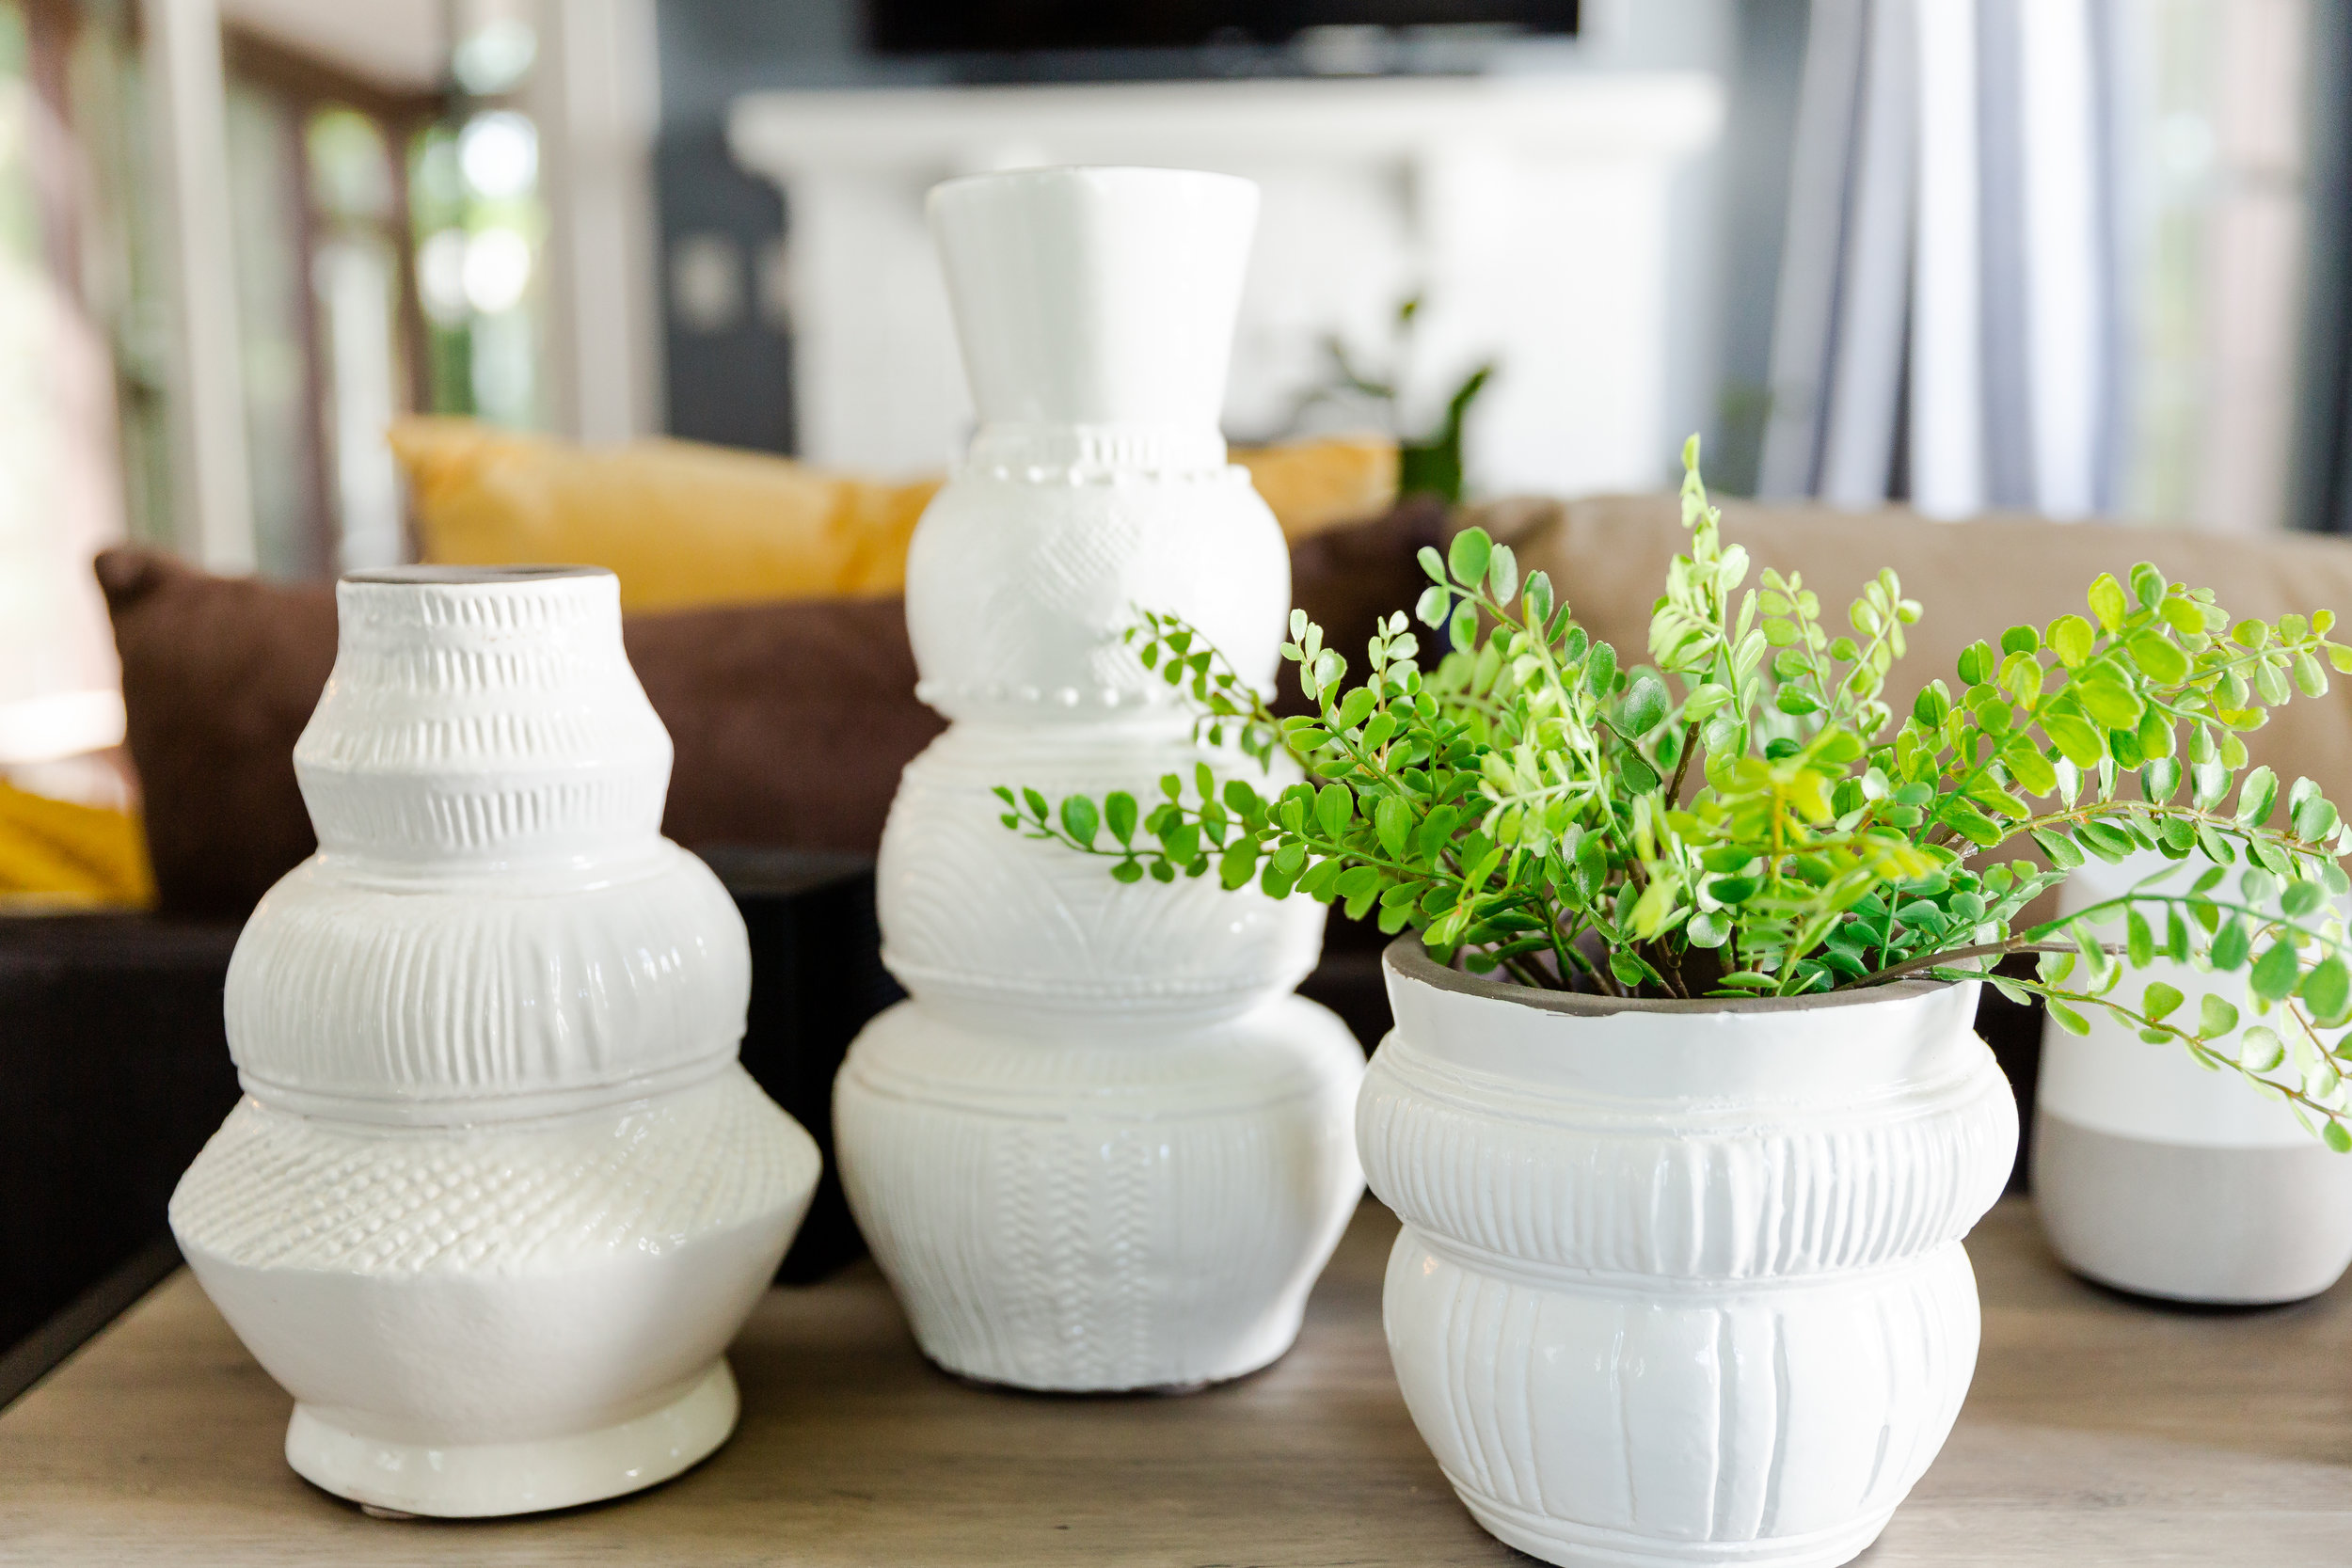 These carved white vases from Target were the perfect accessory for this living room!